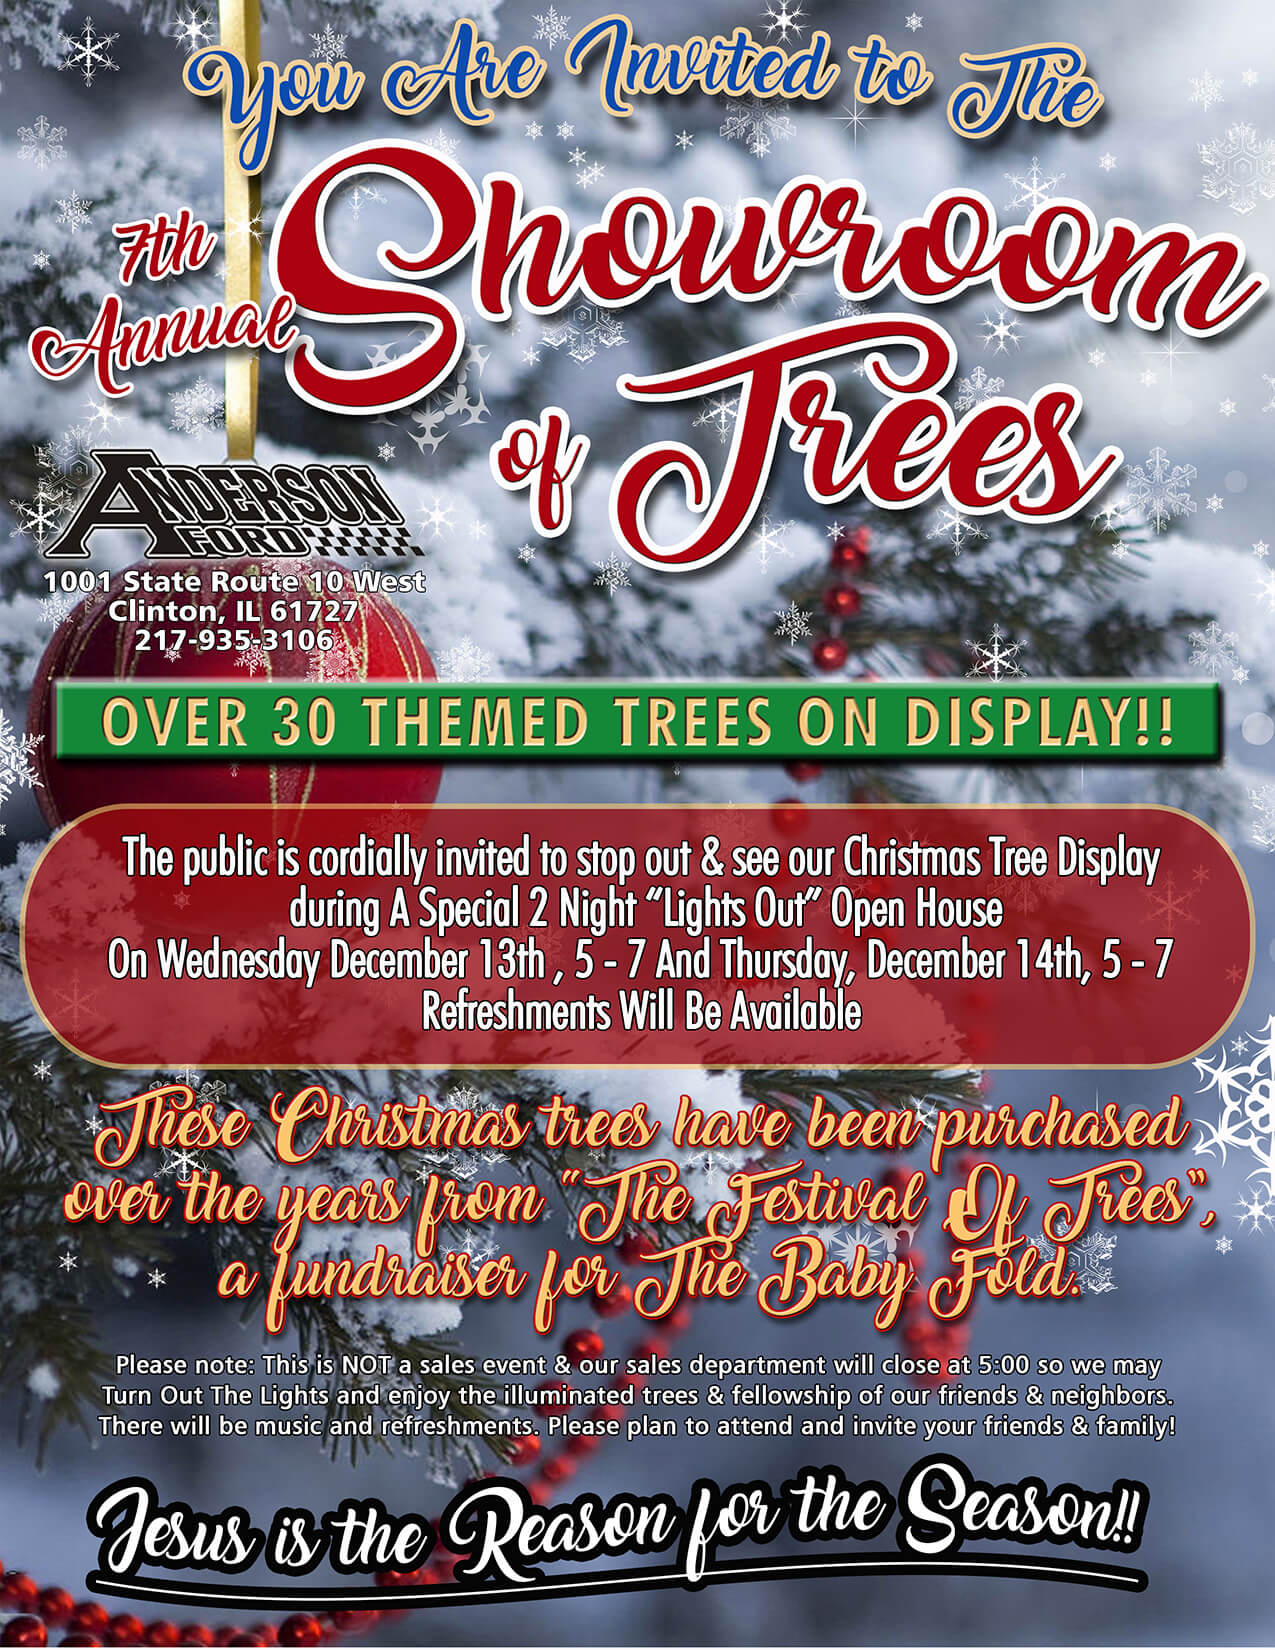 Anderson Ford Showroom of Trees flyer